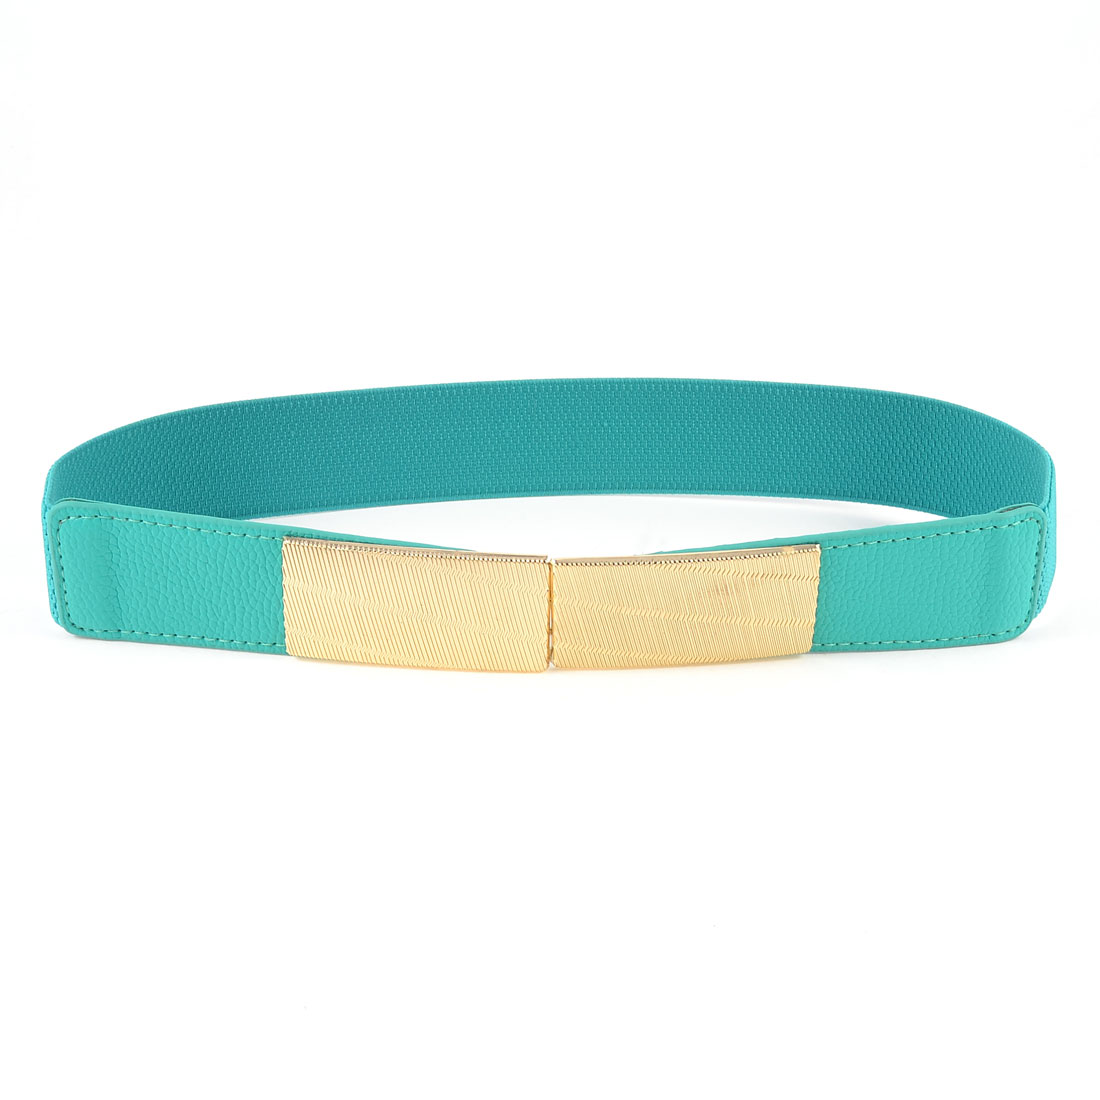 Gold Tone Interlocking Buckle Teal Green Elastic Cinch Belt Band for Lady